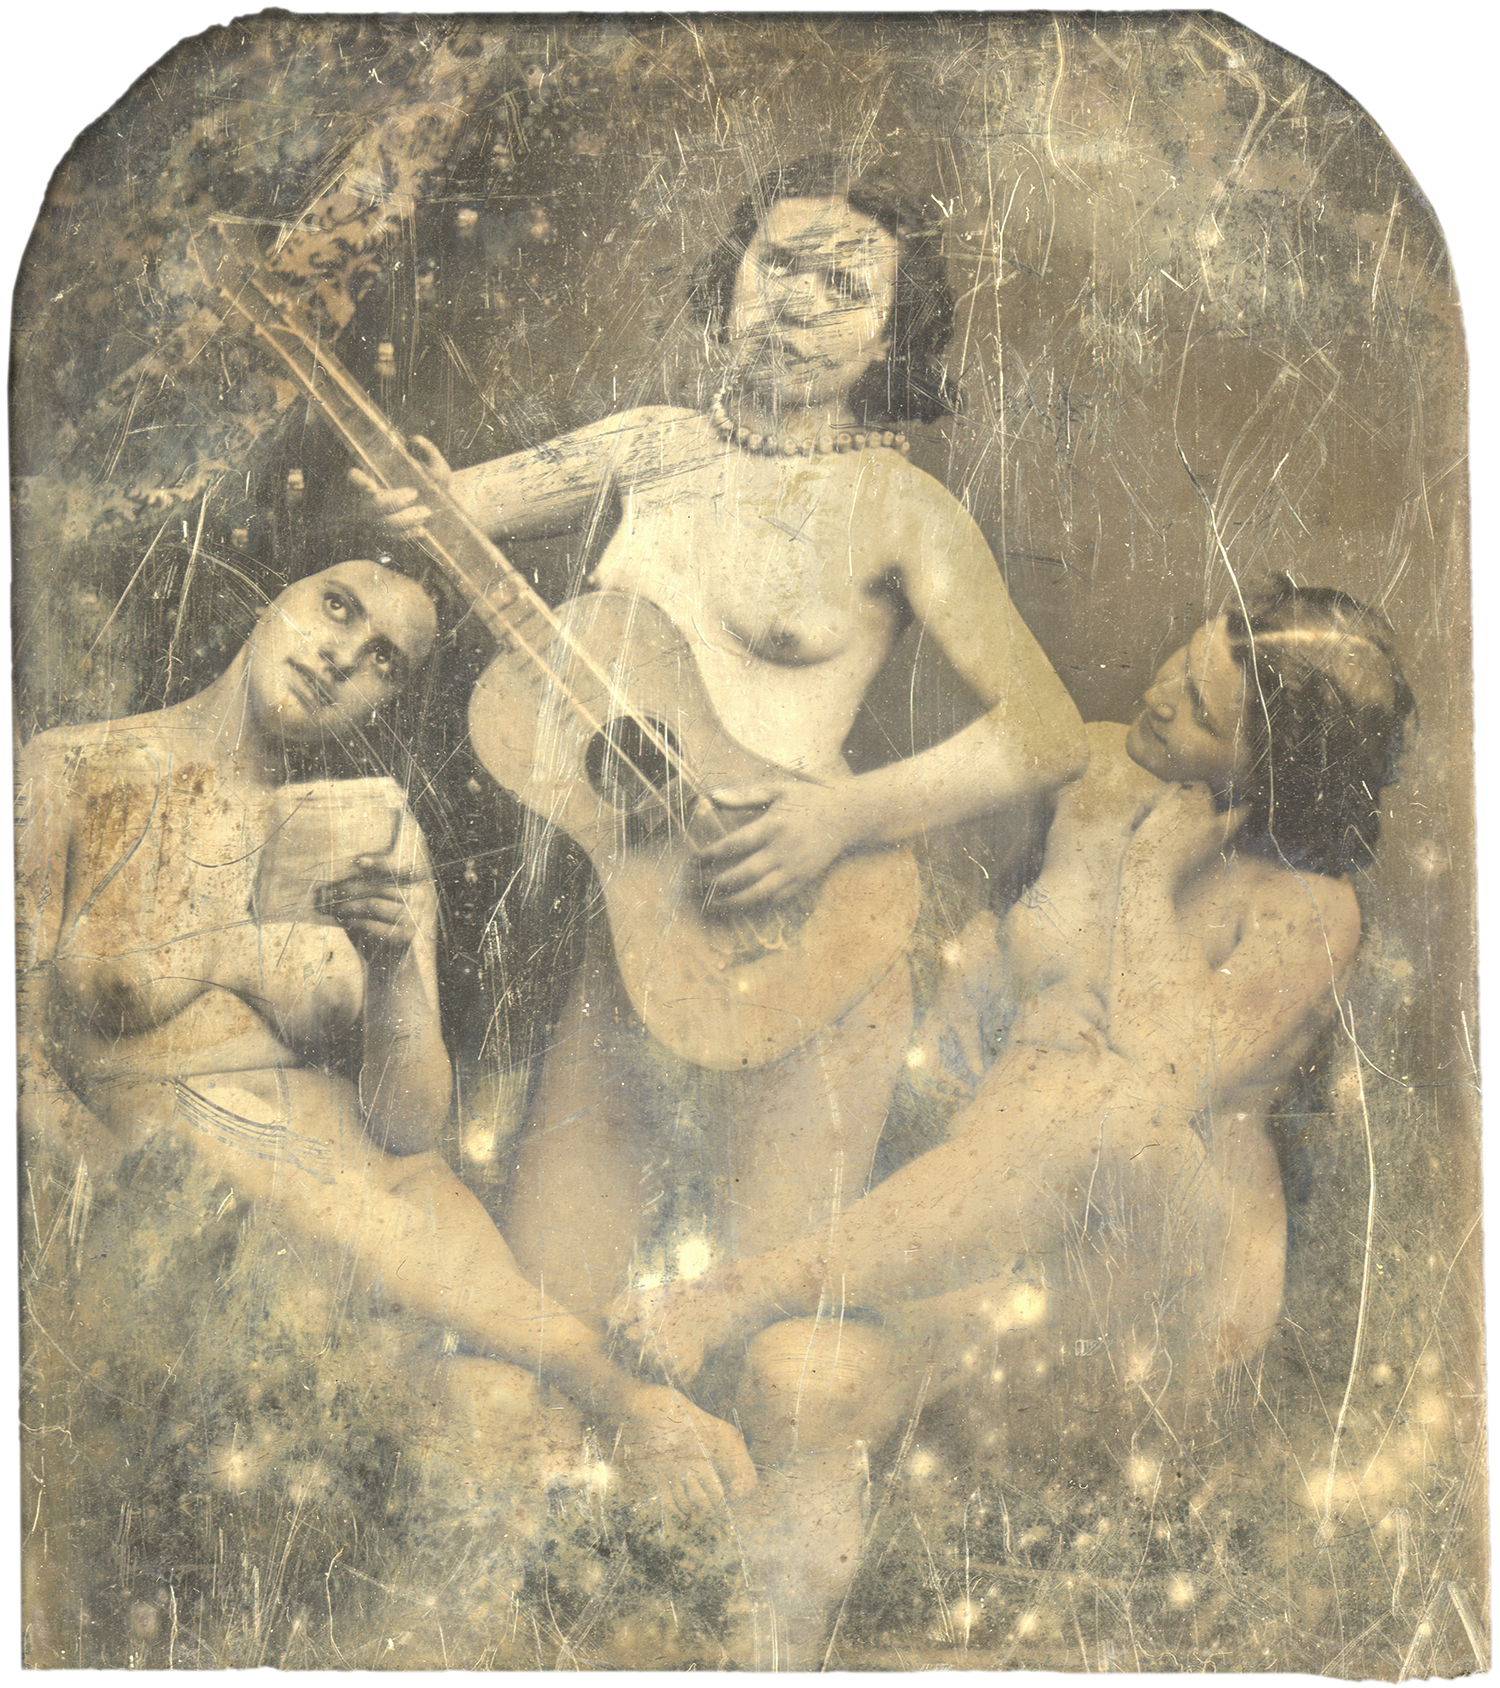 Young Nymphs with Guitar, 2011 - LR11594